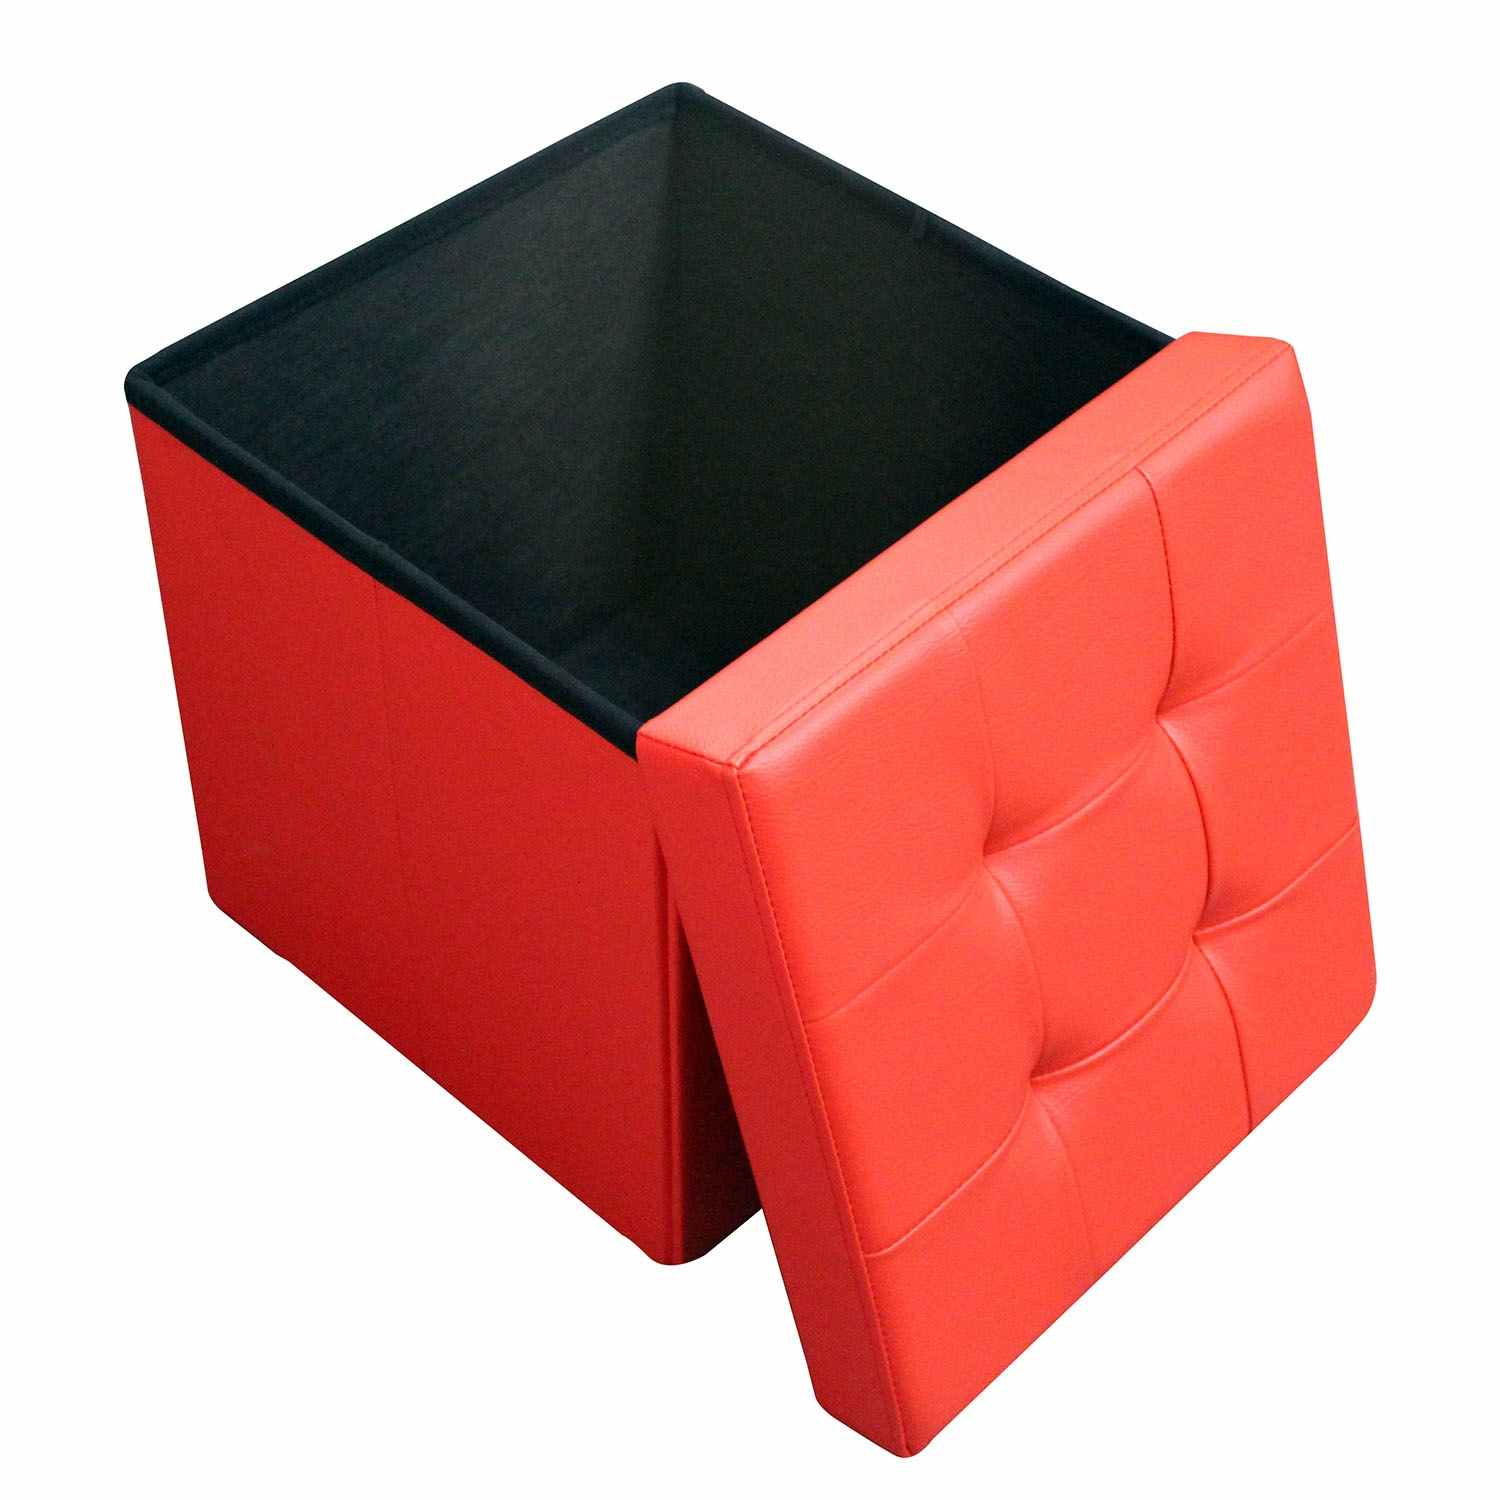 pouf coffre capitonne maison design. Black Bedroom Furniture Sets. Home Design Ideas